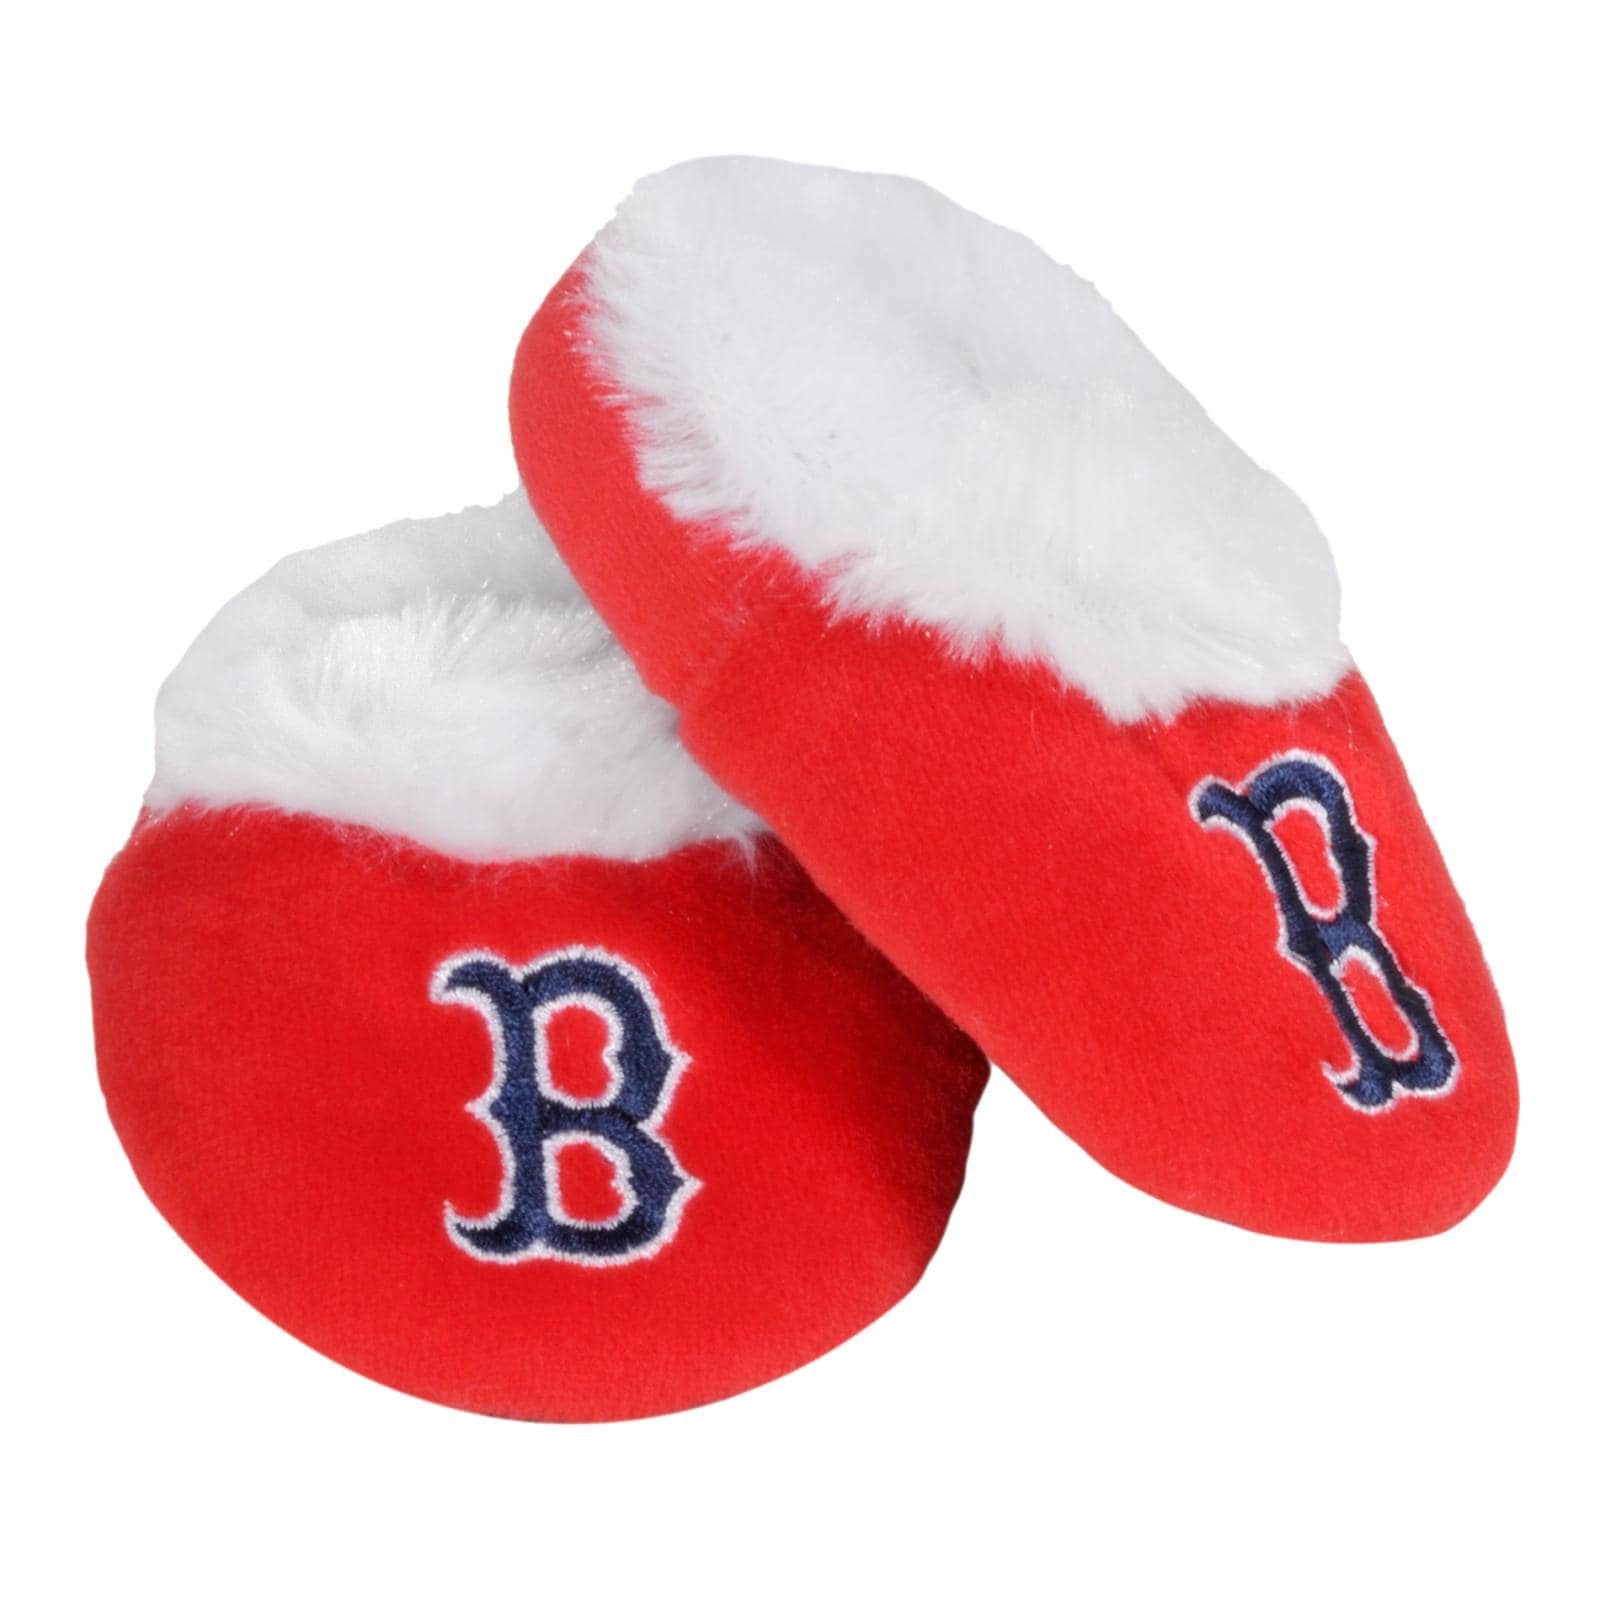 Boston Red Sox Baby Bootie Slippers - Thumbnail 0